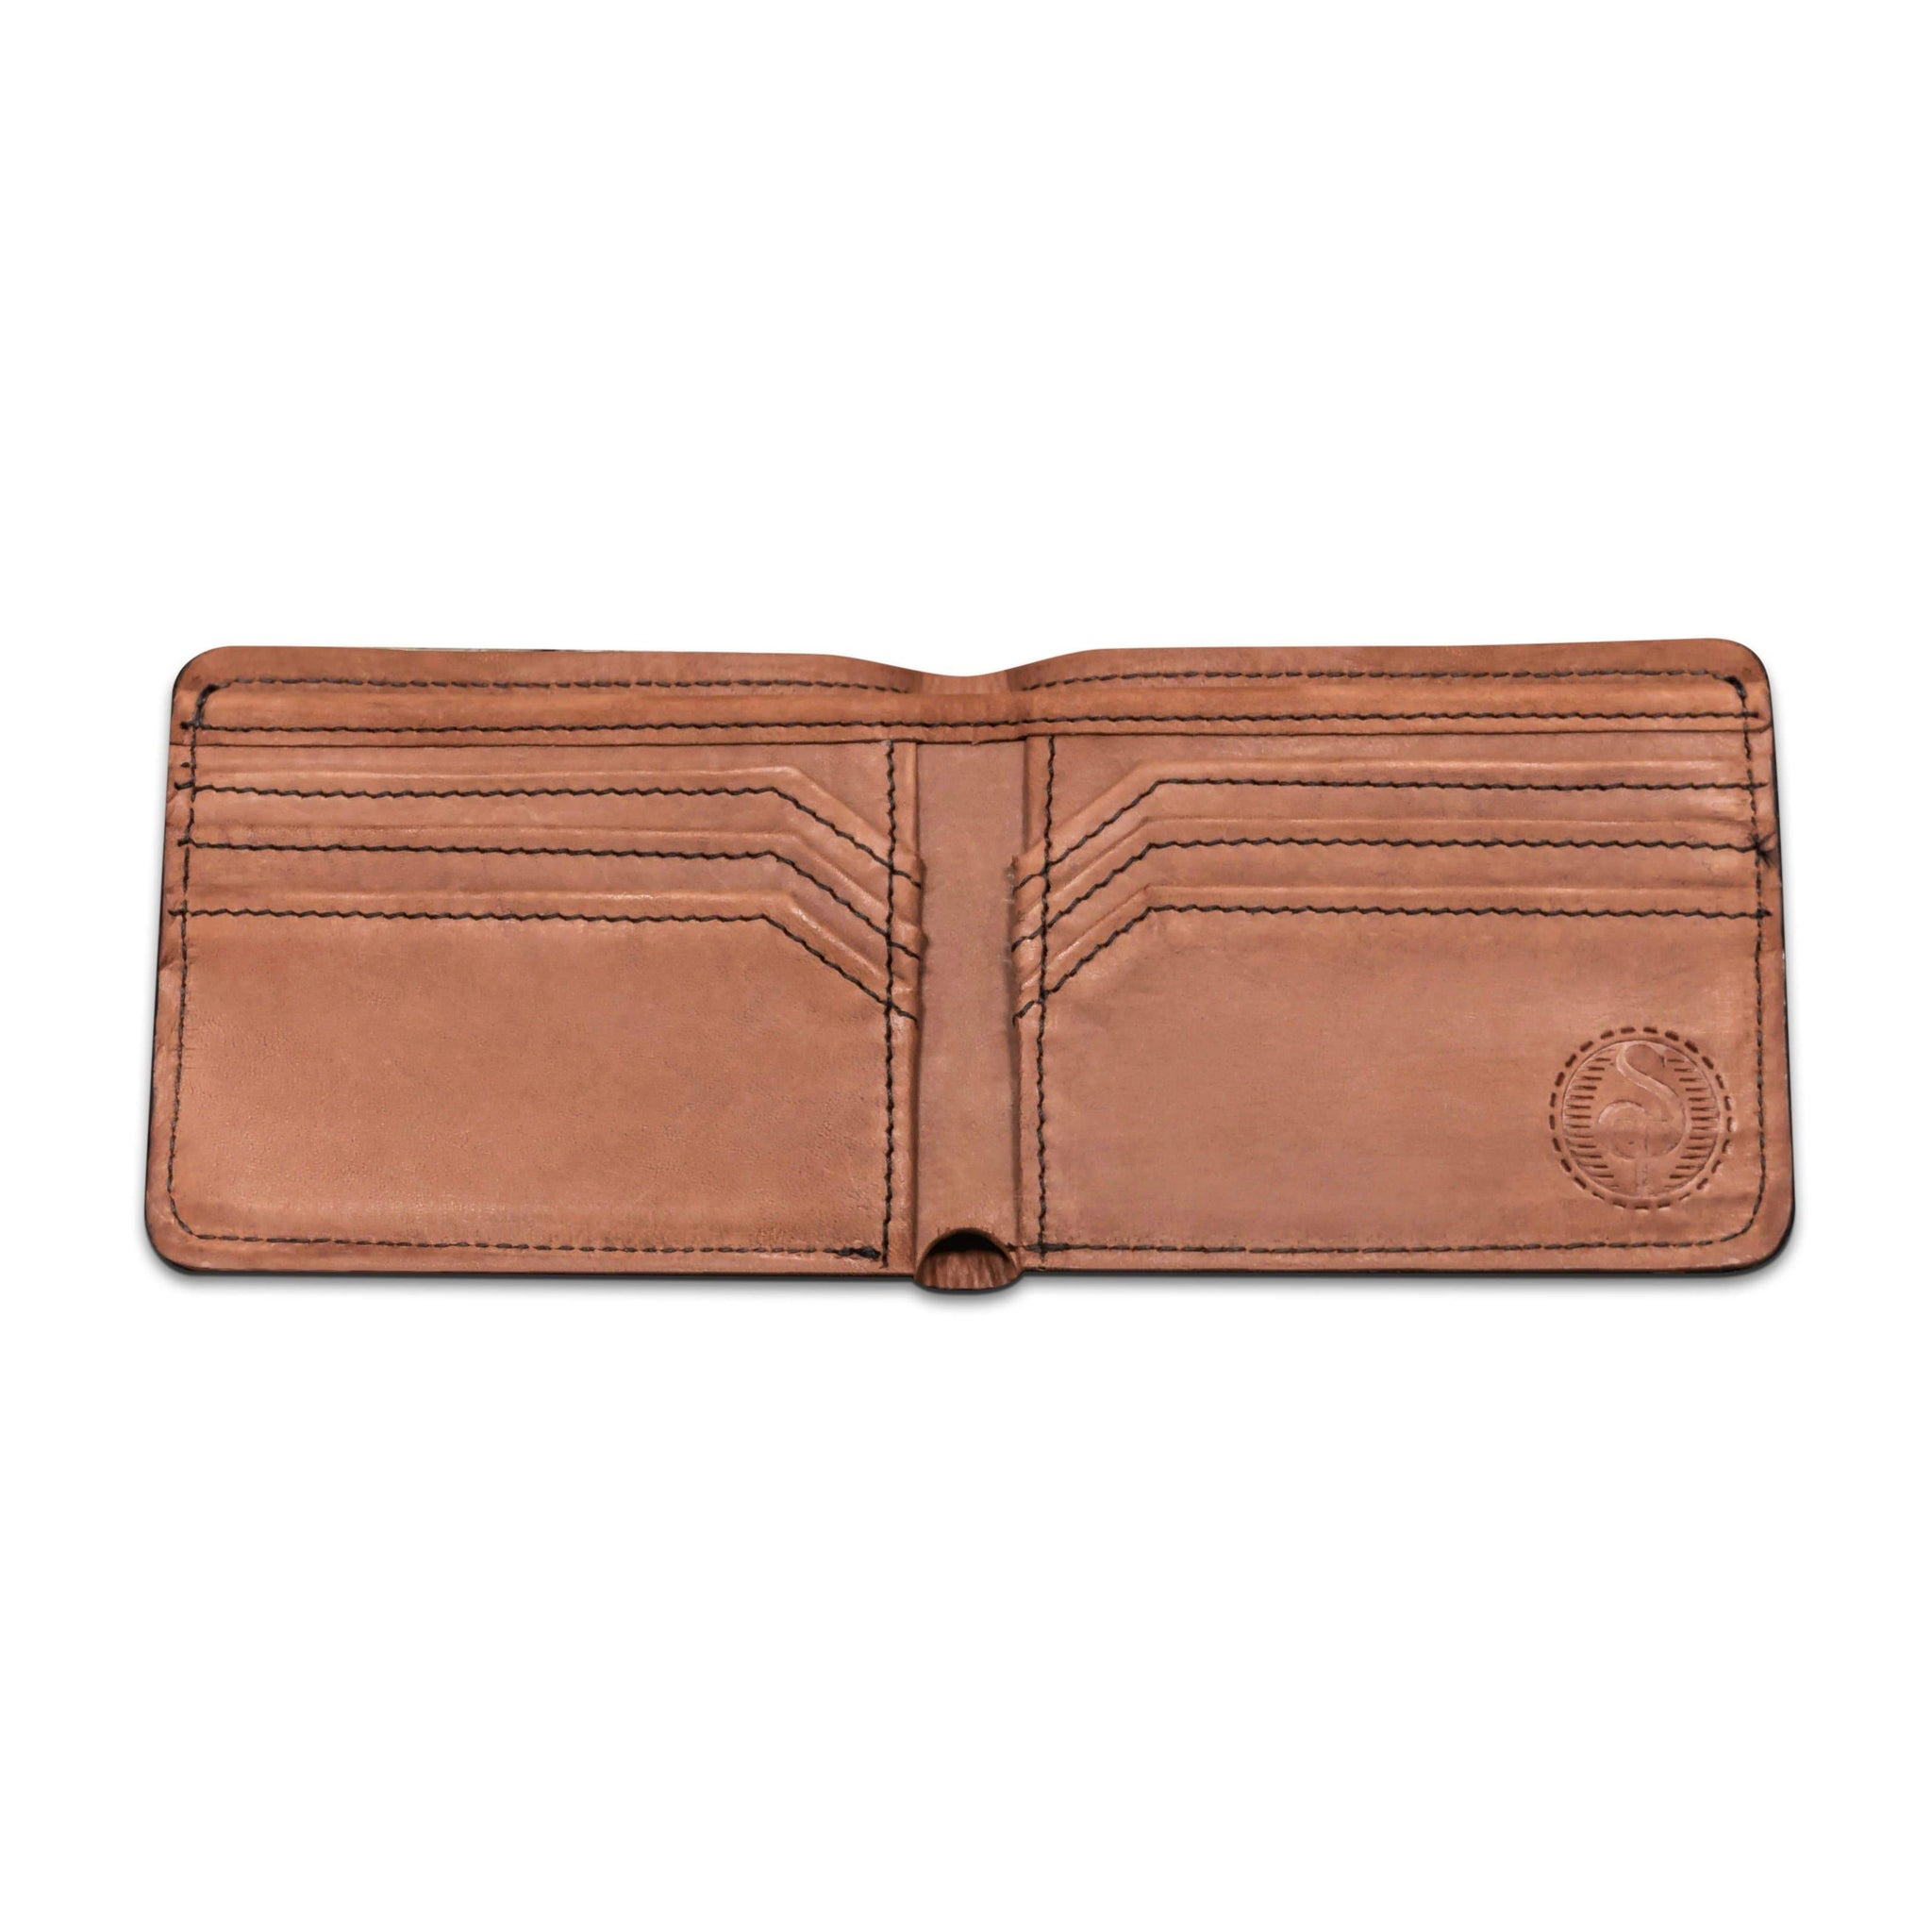 alligator skin wallet